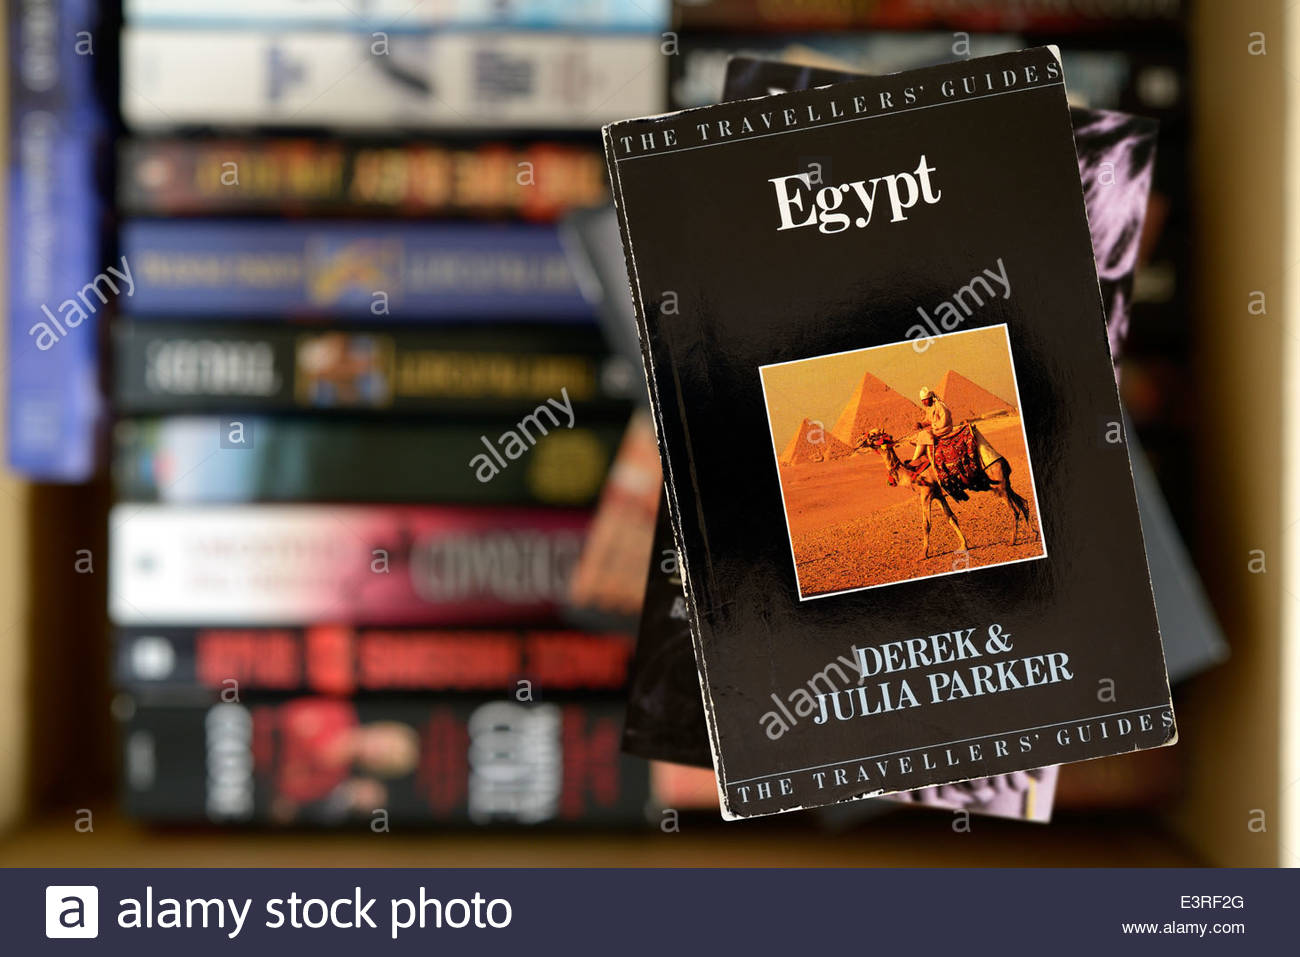 Old Travel Guide To Egypt Book Title Stacked Used Books England Stock Photo Alamy